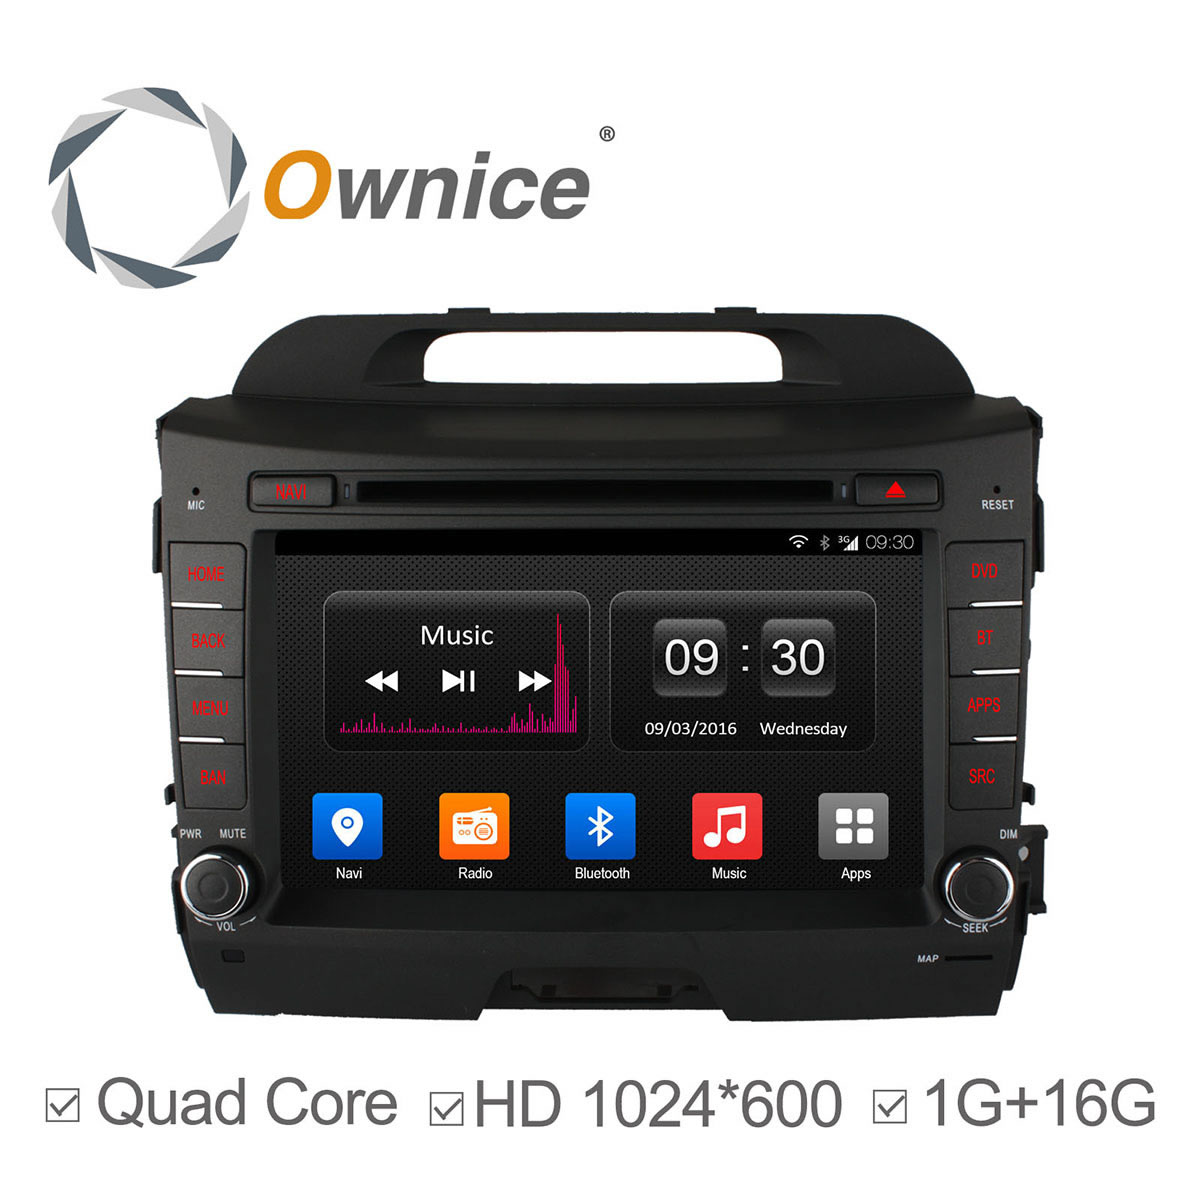 1024*600 Android4.4 car dvd gps player for KIA sportage r 2014 2011 2012 2013 2015 in dash car radio gps 16G ROM support 3G DAB+